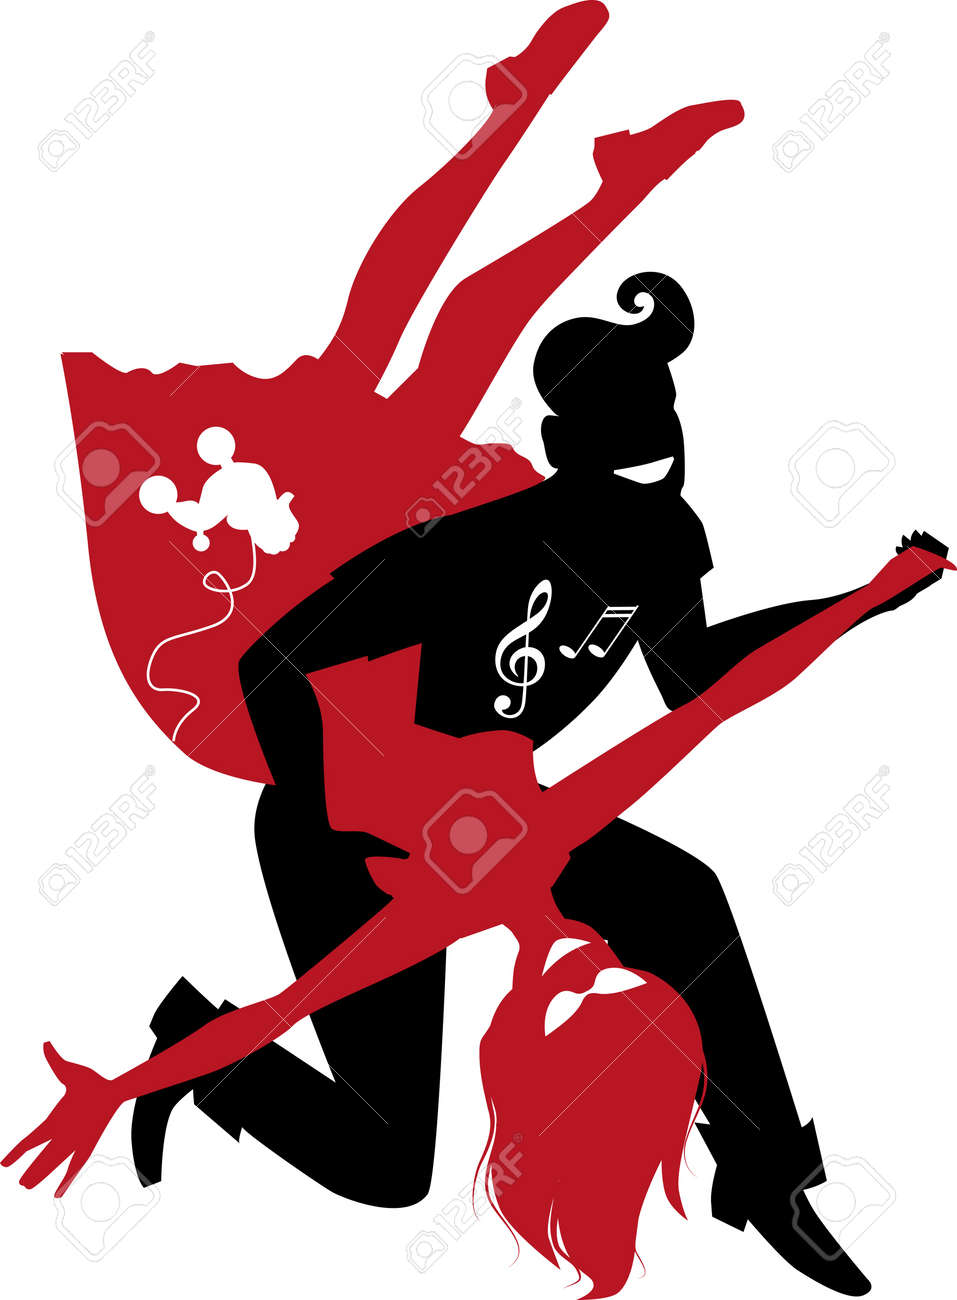 medium resolution of red and black silhouette of a couple dancing 1950s style rock and roll no white objects